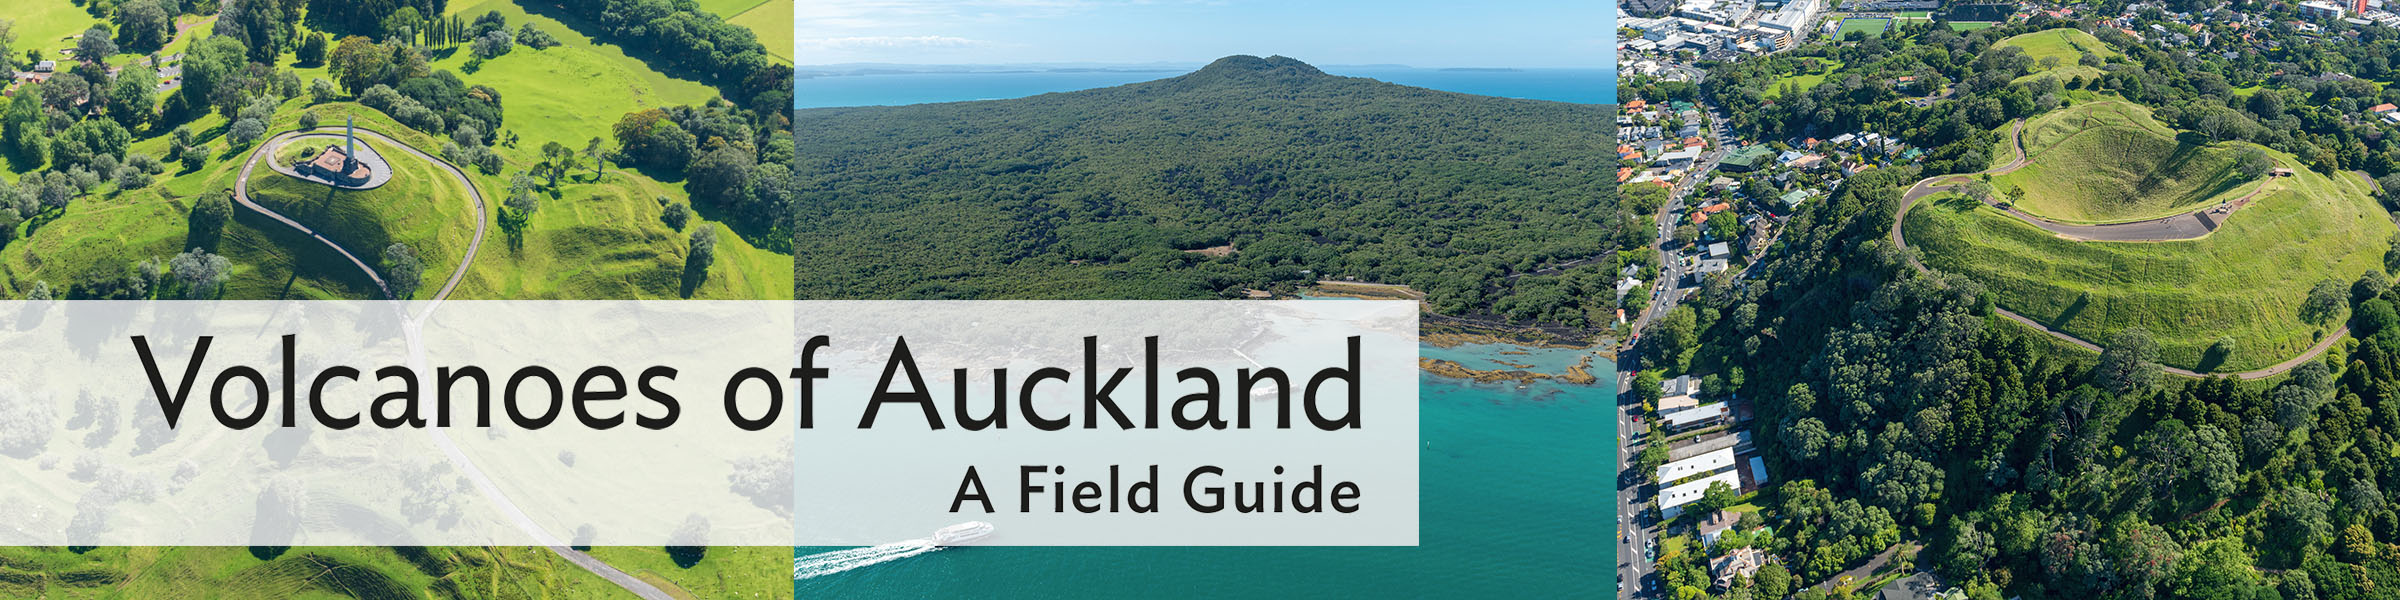 Volcanoes of Auckland: A Field Guide by Bruce W. Hayward